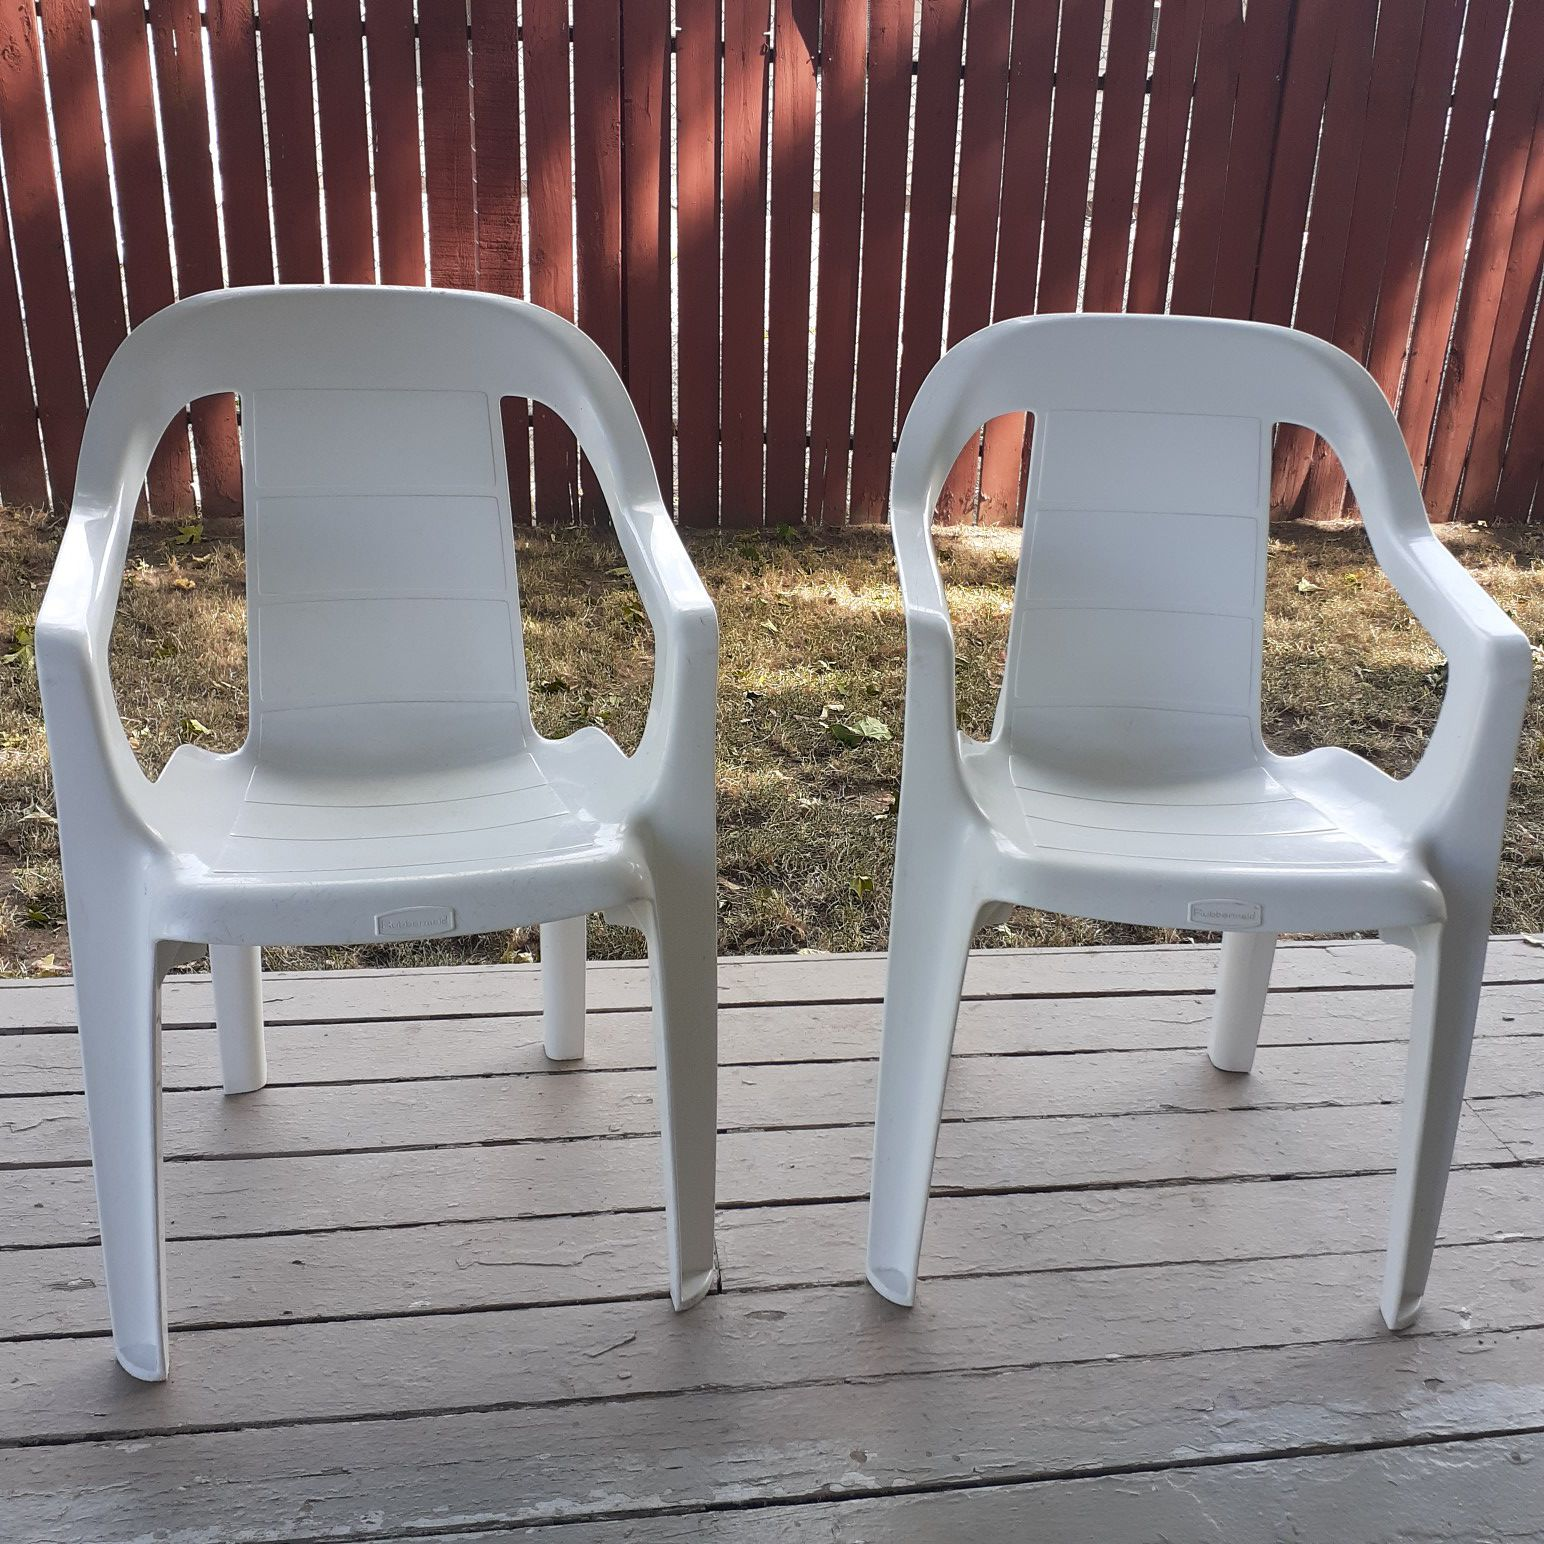 2 kids size rubbermaid outdoor chairs